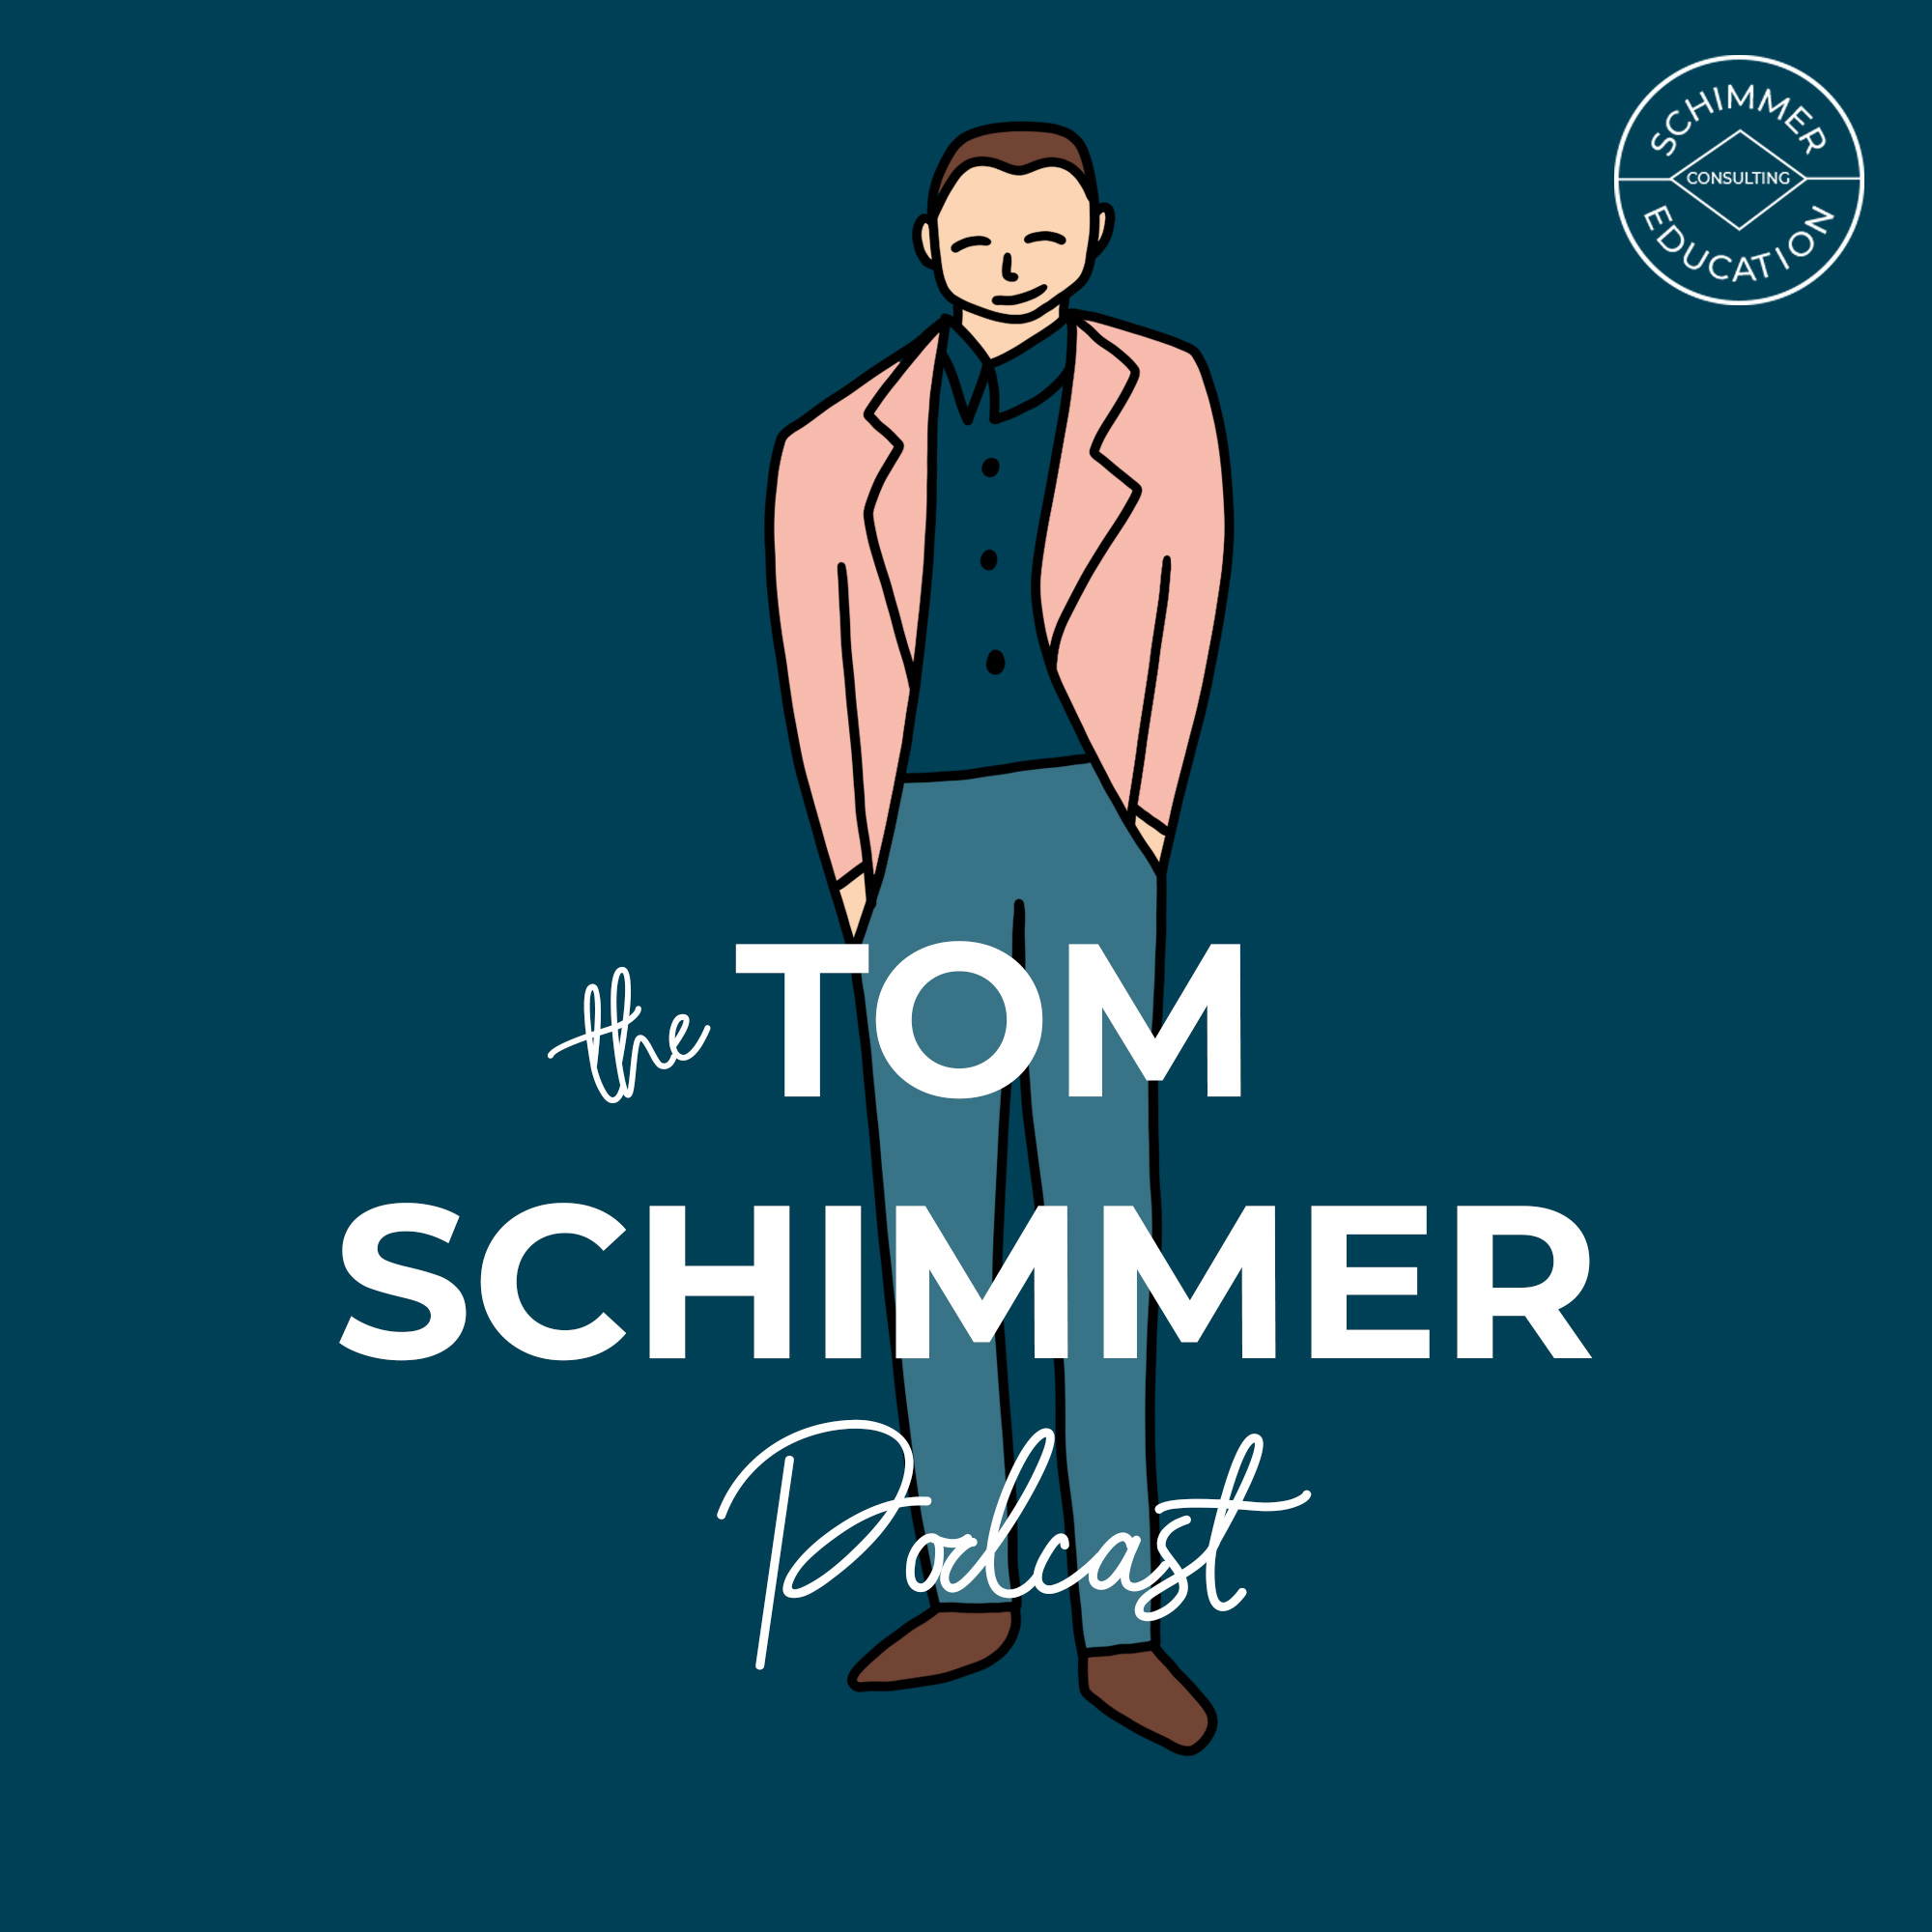 The Tom Schimmer Podcast